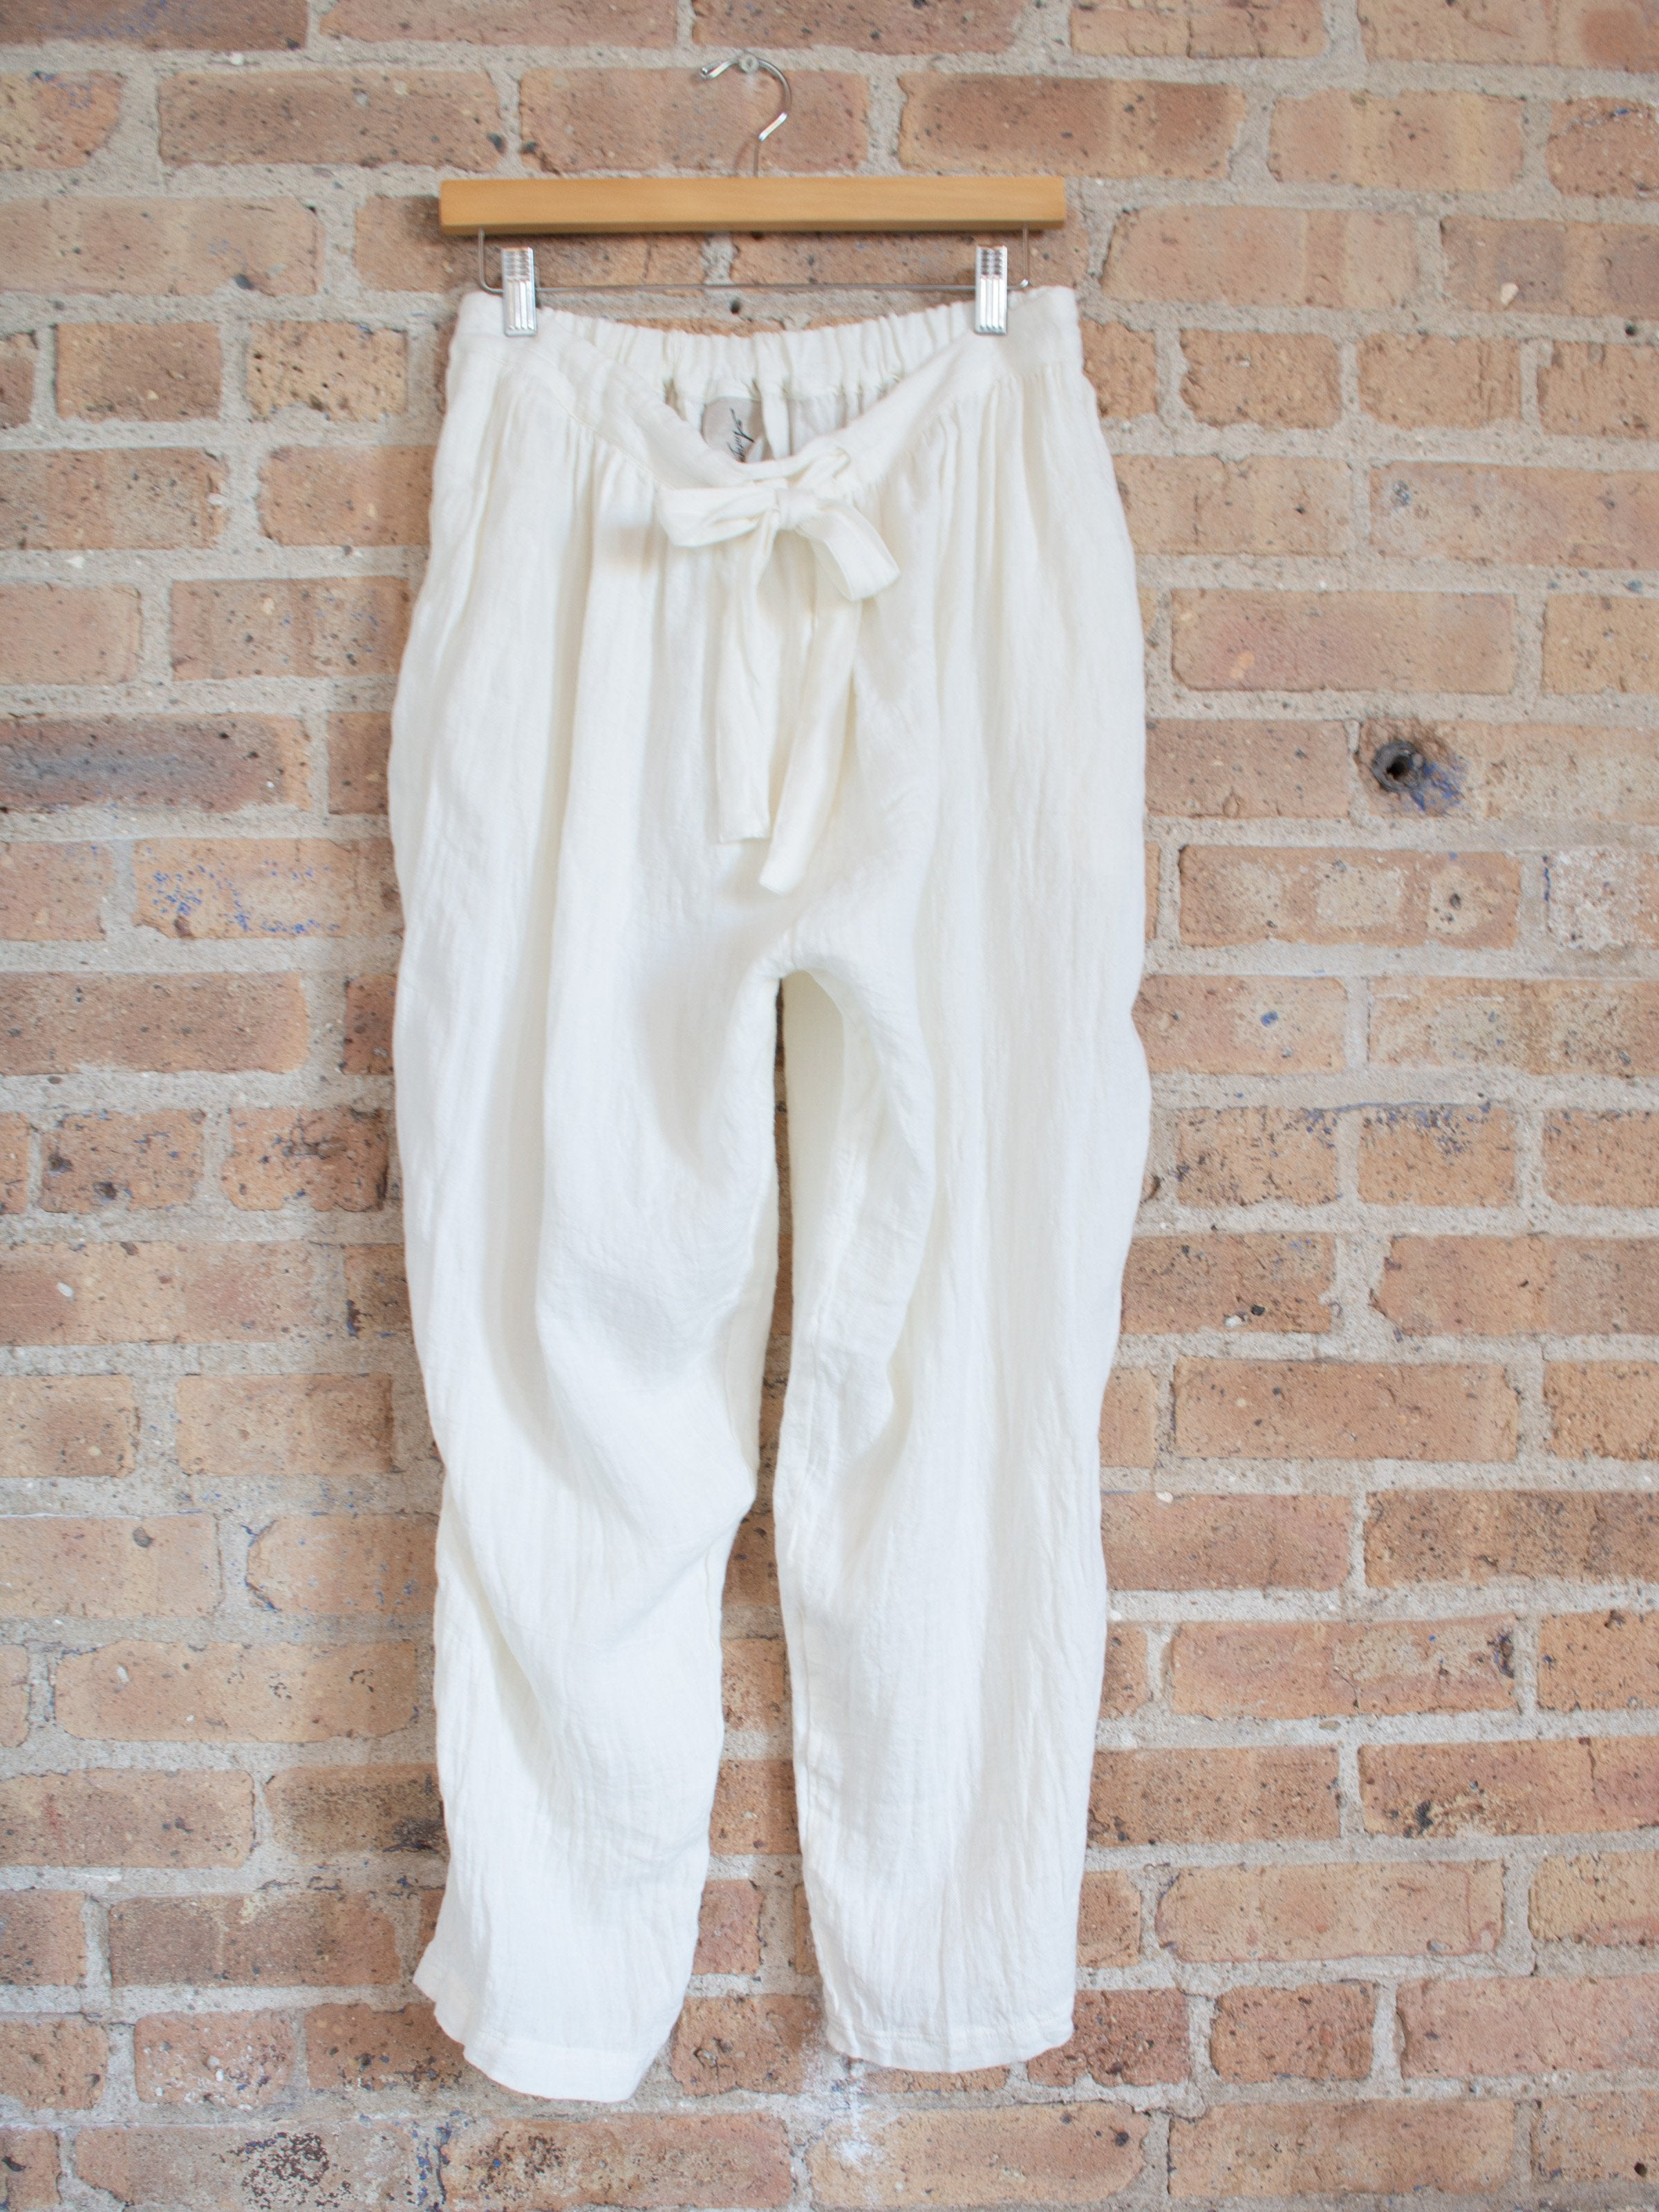 Namu Shop - Ichi Antiquites AZUMADAKI Linen Pants - White